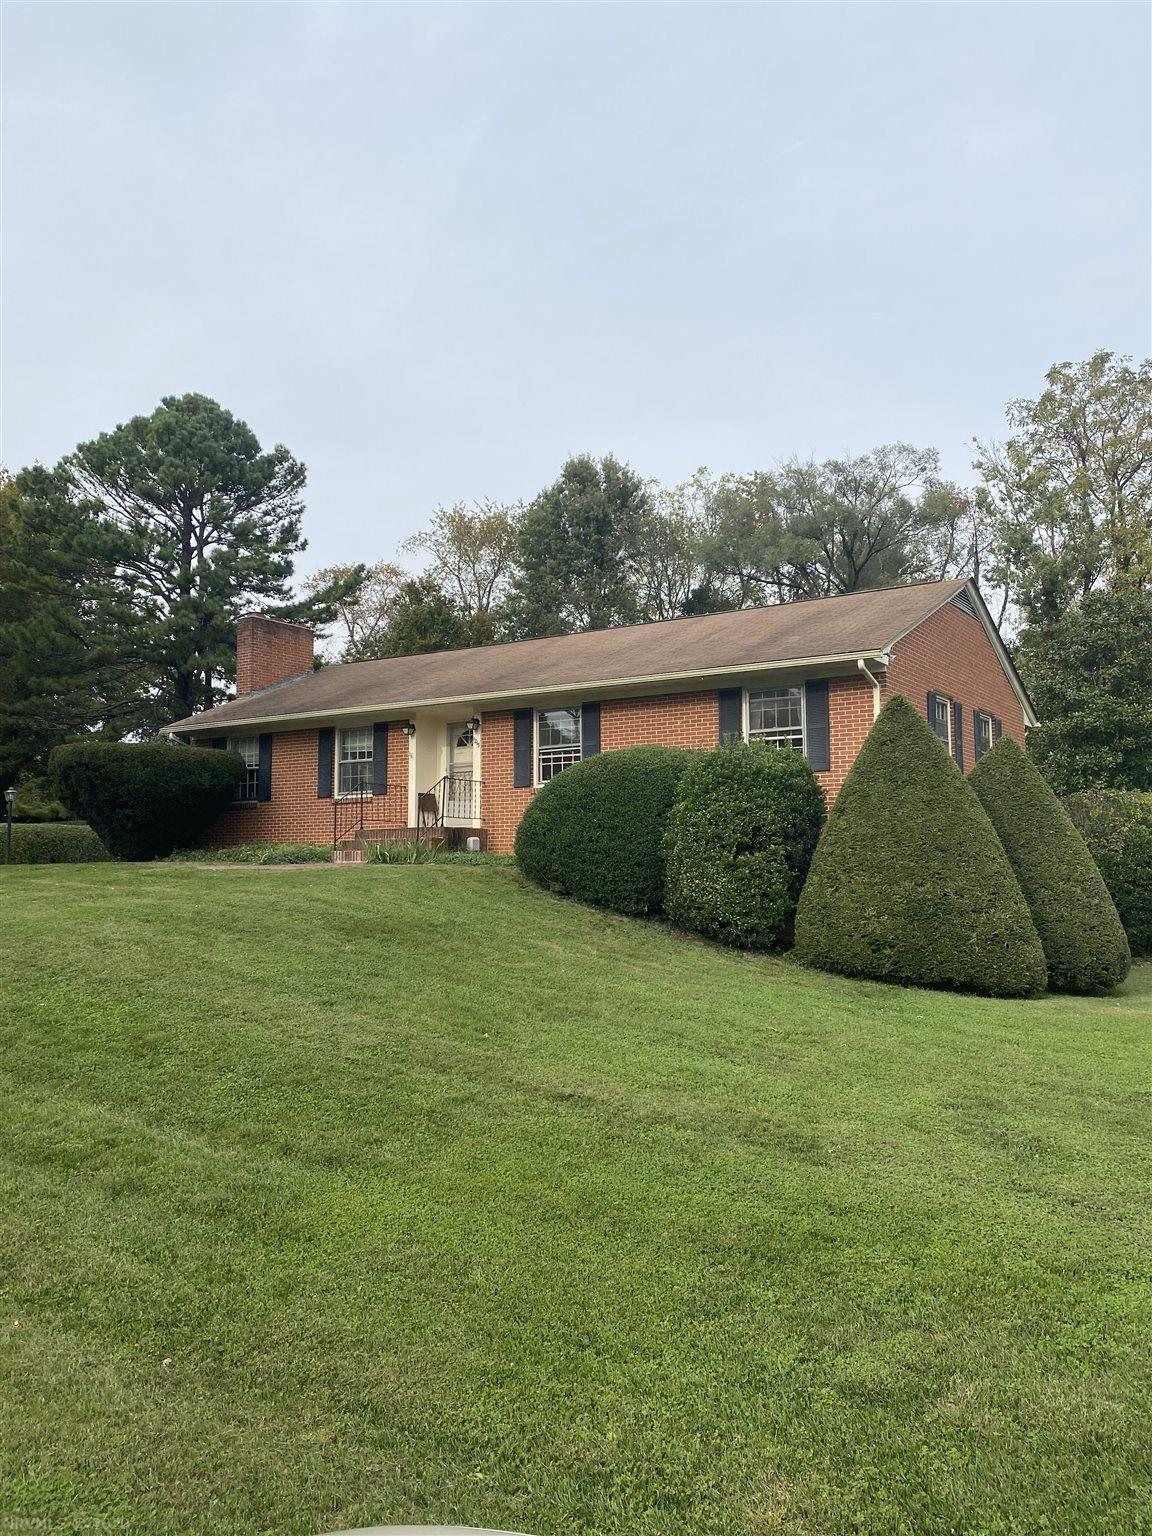 Location, Location, Location.  Close to shopping, campus. not to mention the Huckleberry and Lane Stadium. Hardwood Floors. Built in Bookcases in Living Rm along with Masonry Fireplaces in Formal Living Rm and Basement. Two car attached Carport.